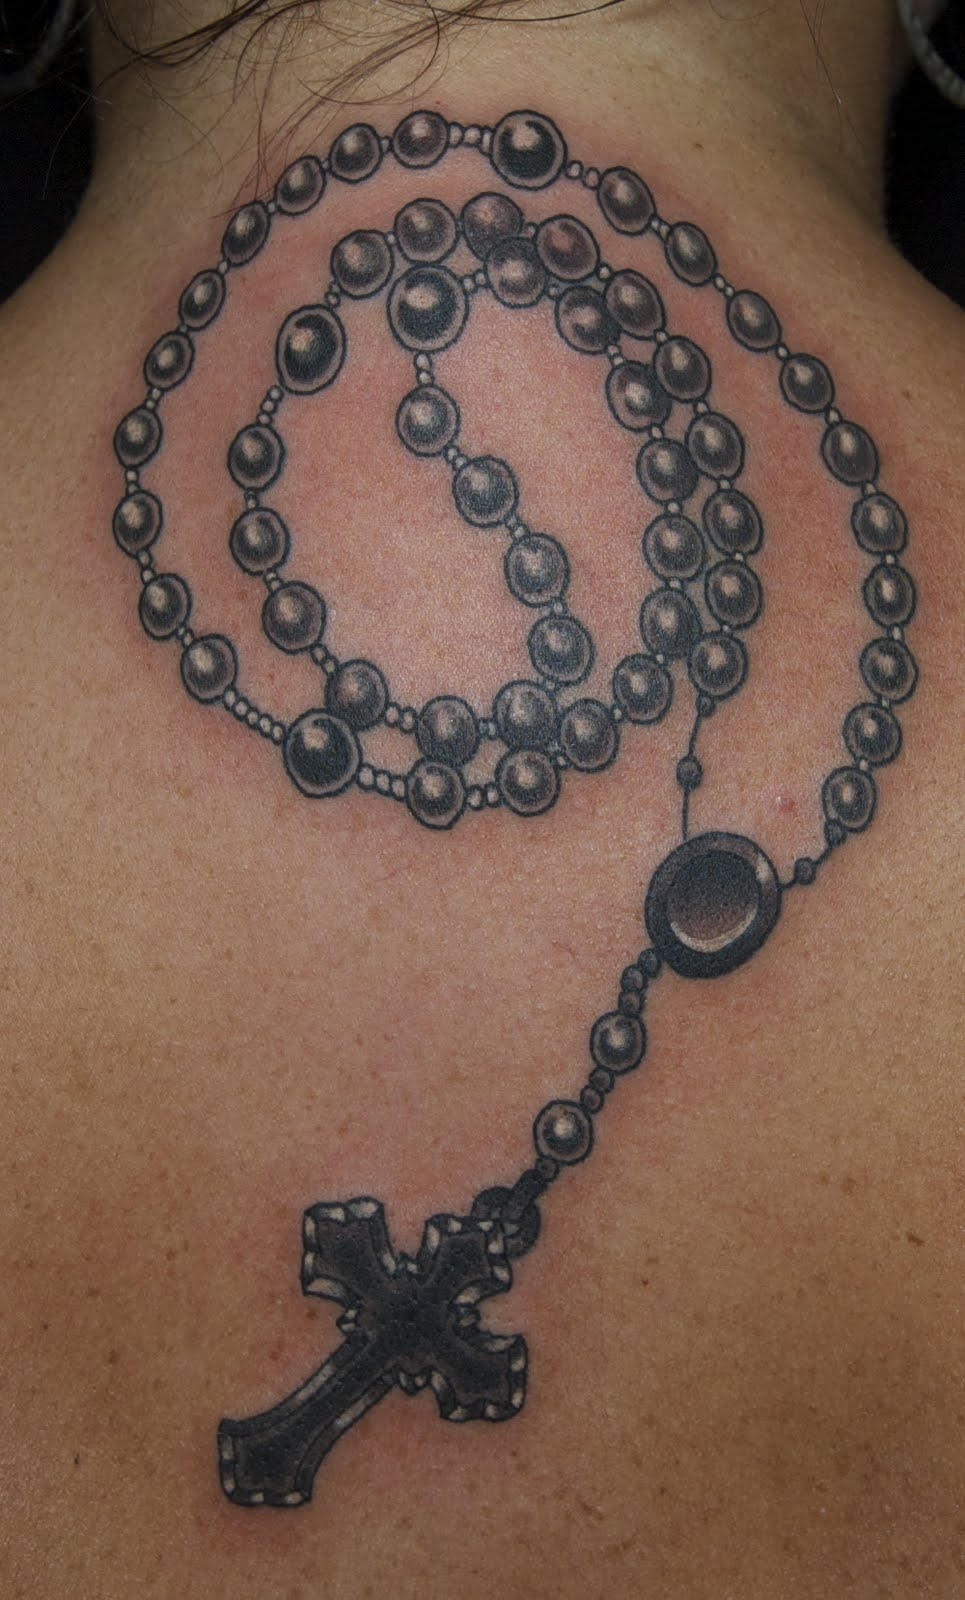 Jeb maykut flyrite tattoo rosary beads for Mf doom tattoo